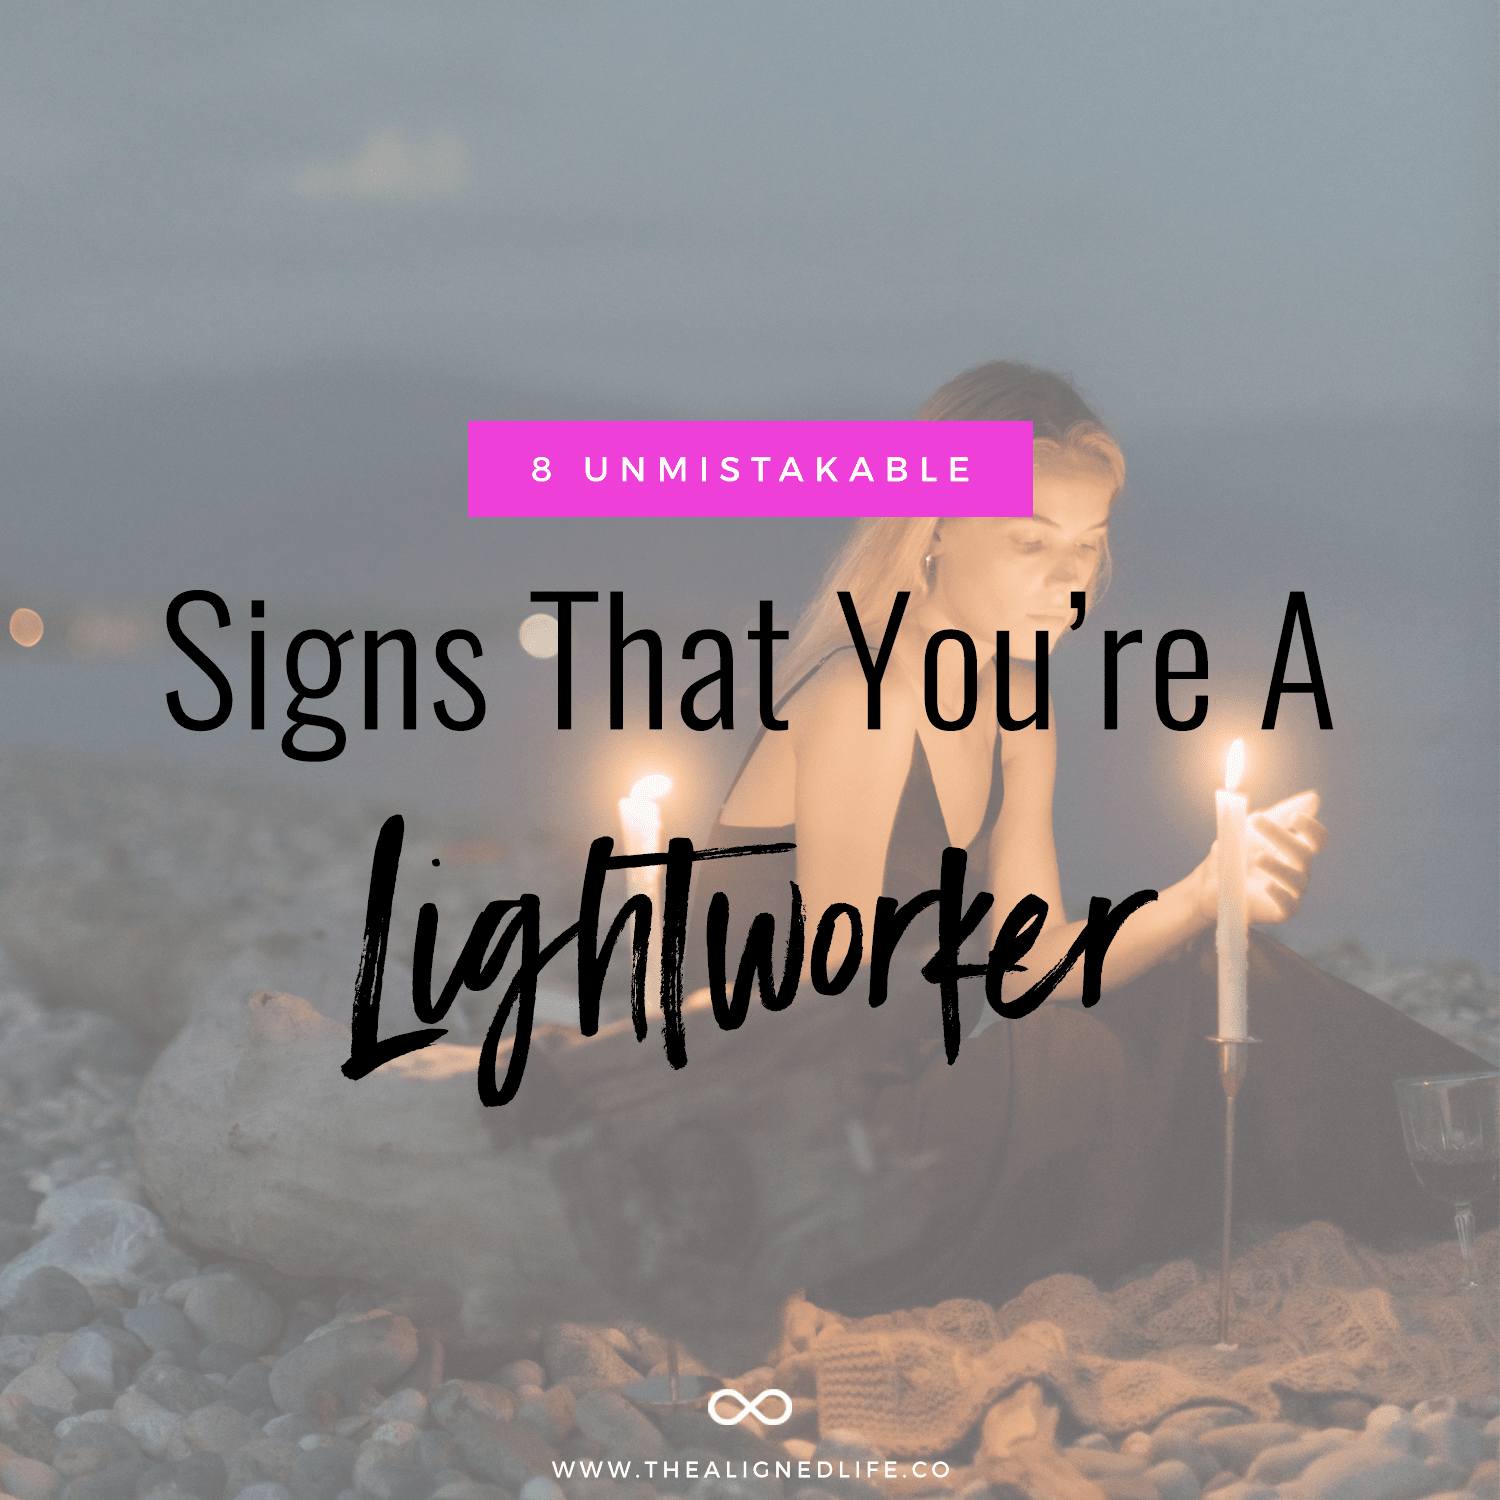 8 Unmistakable Signs That  You're A Lightworker